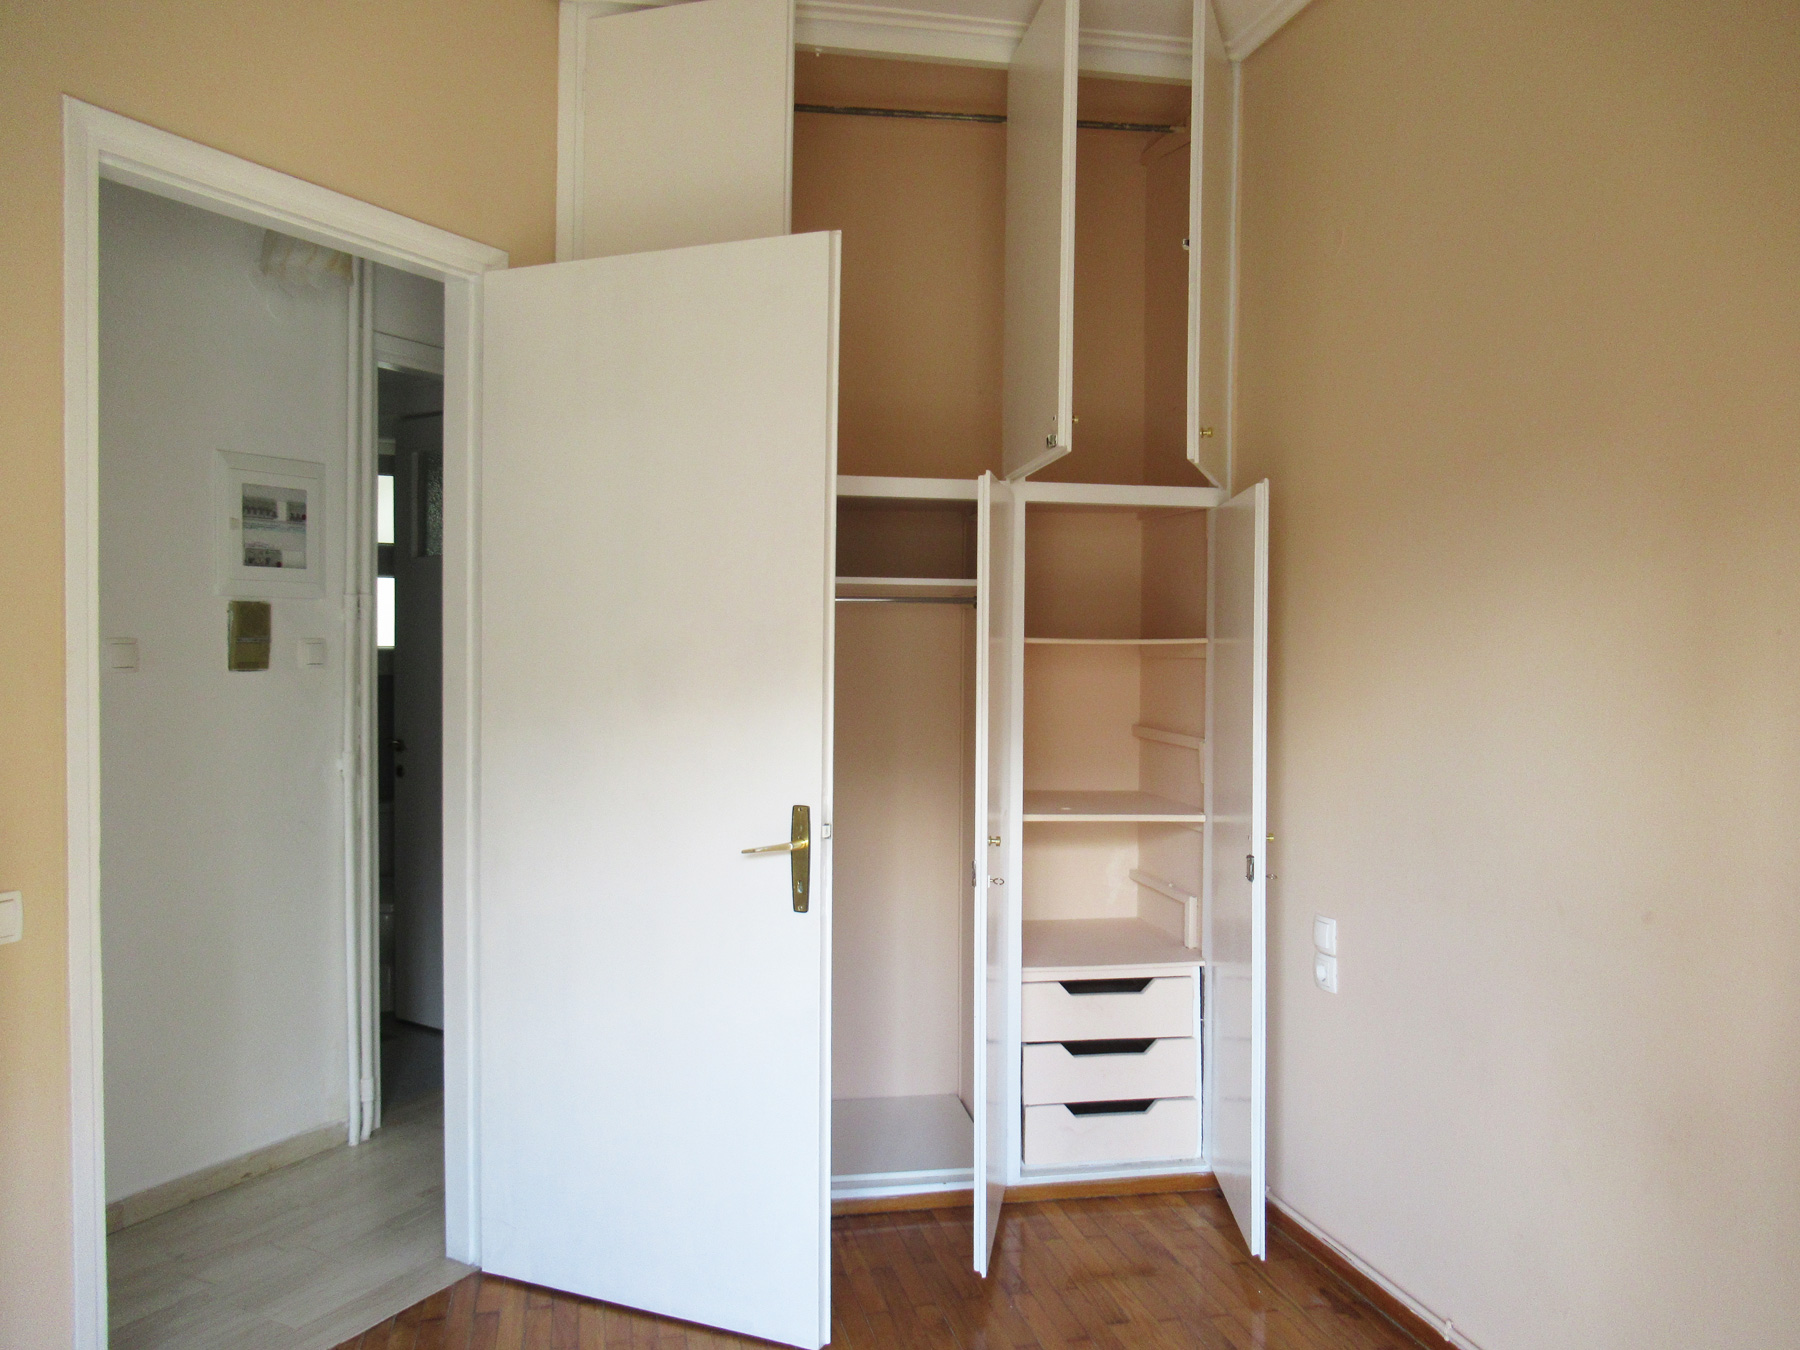 For rent fully renovated studio of 35 sq.m. on the 3rd floor in the center of Ioannina